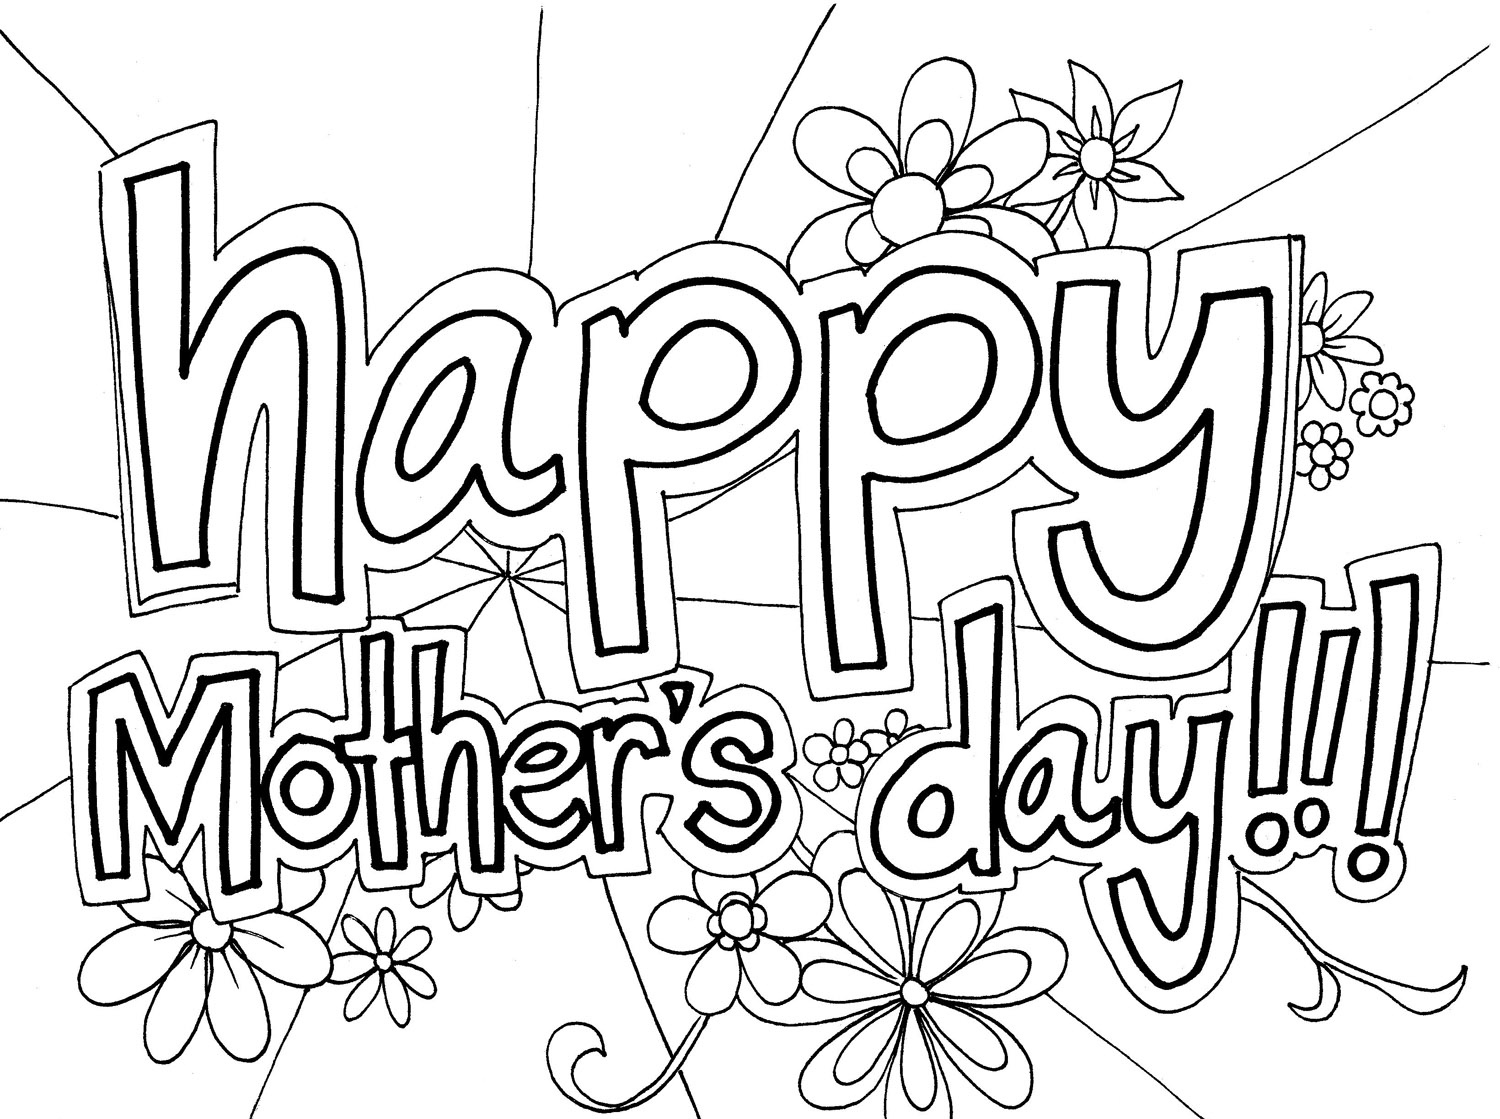 Fathers Day Cards 2012 Free Mother S Day Coloring Pages To Print